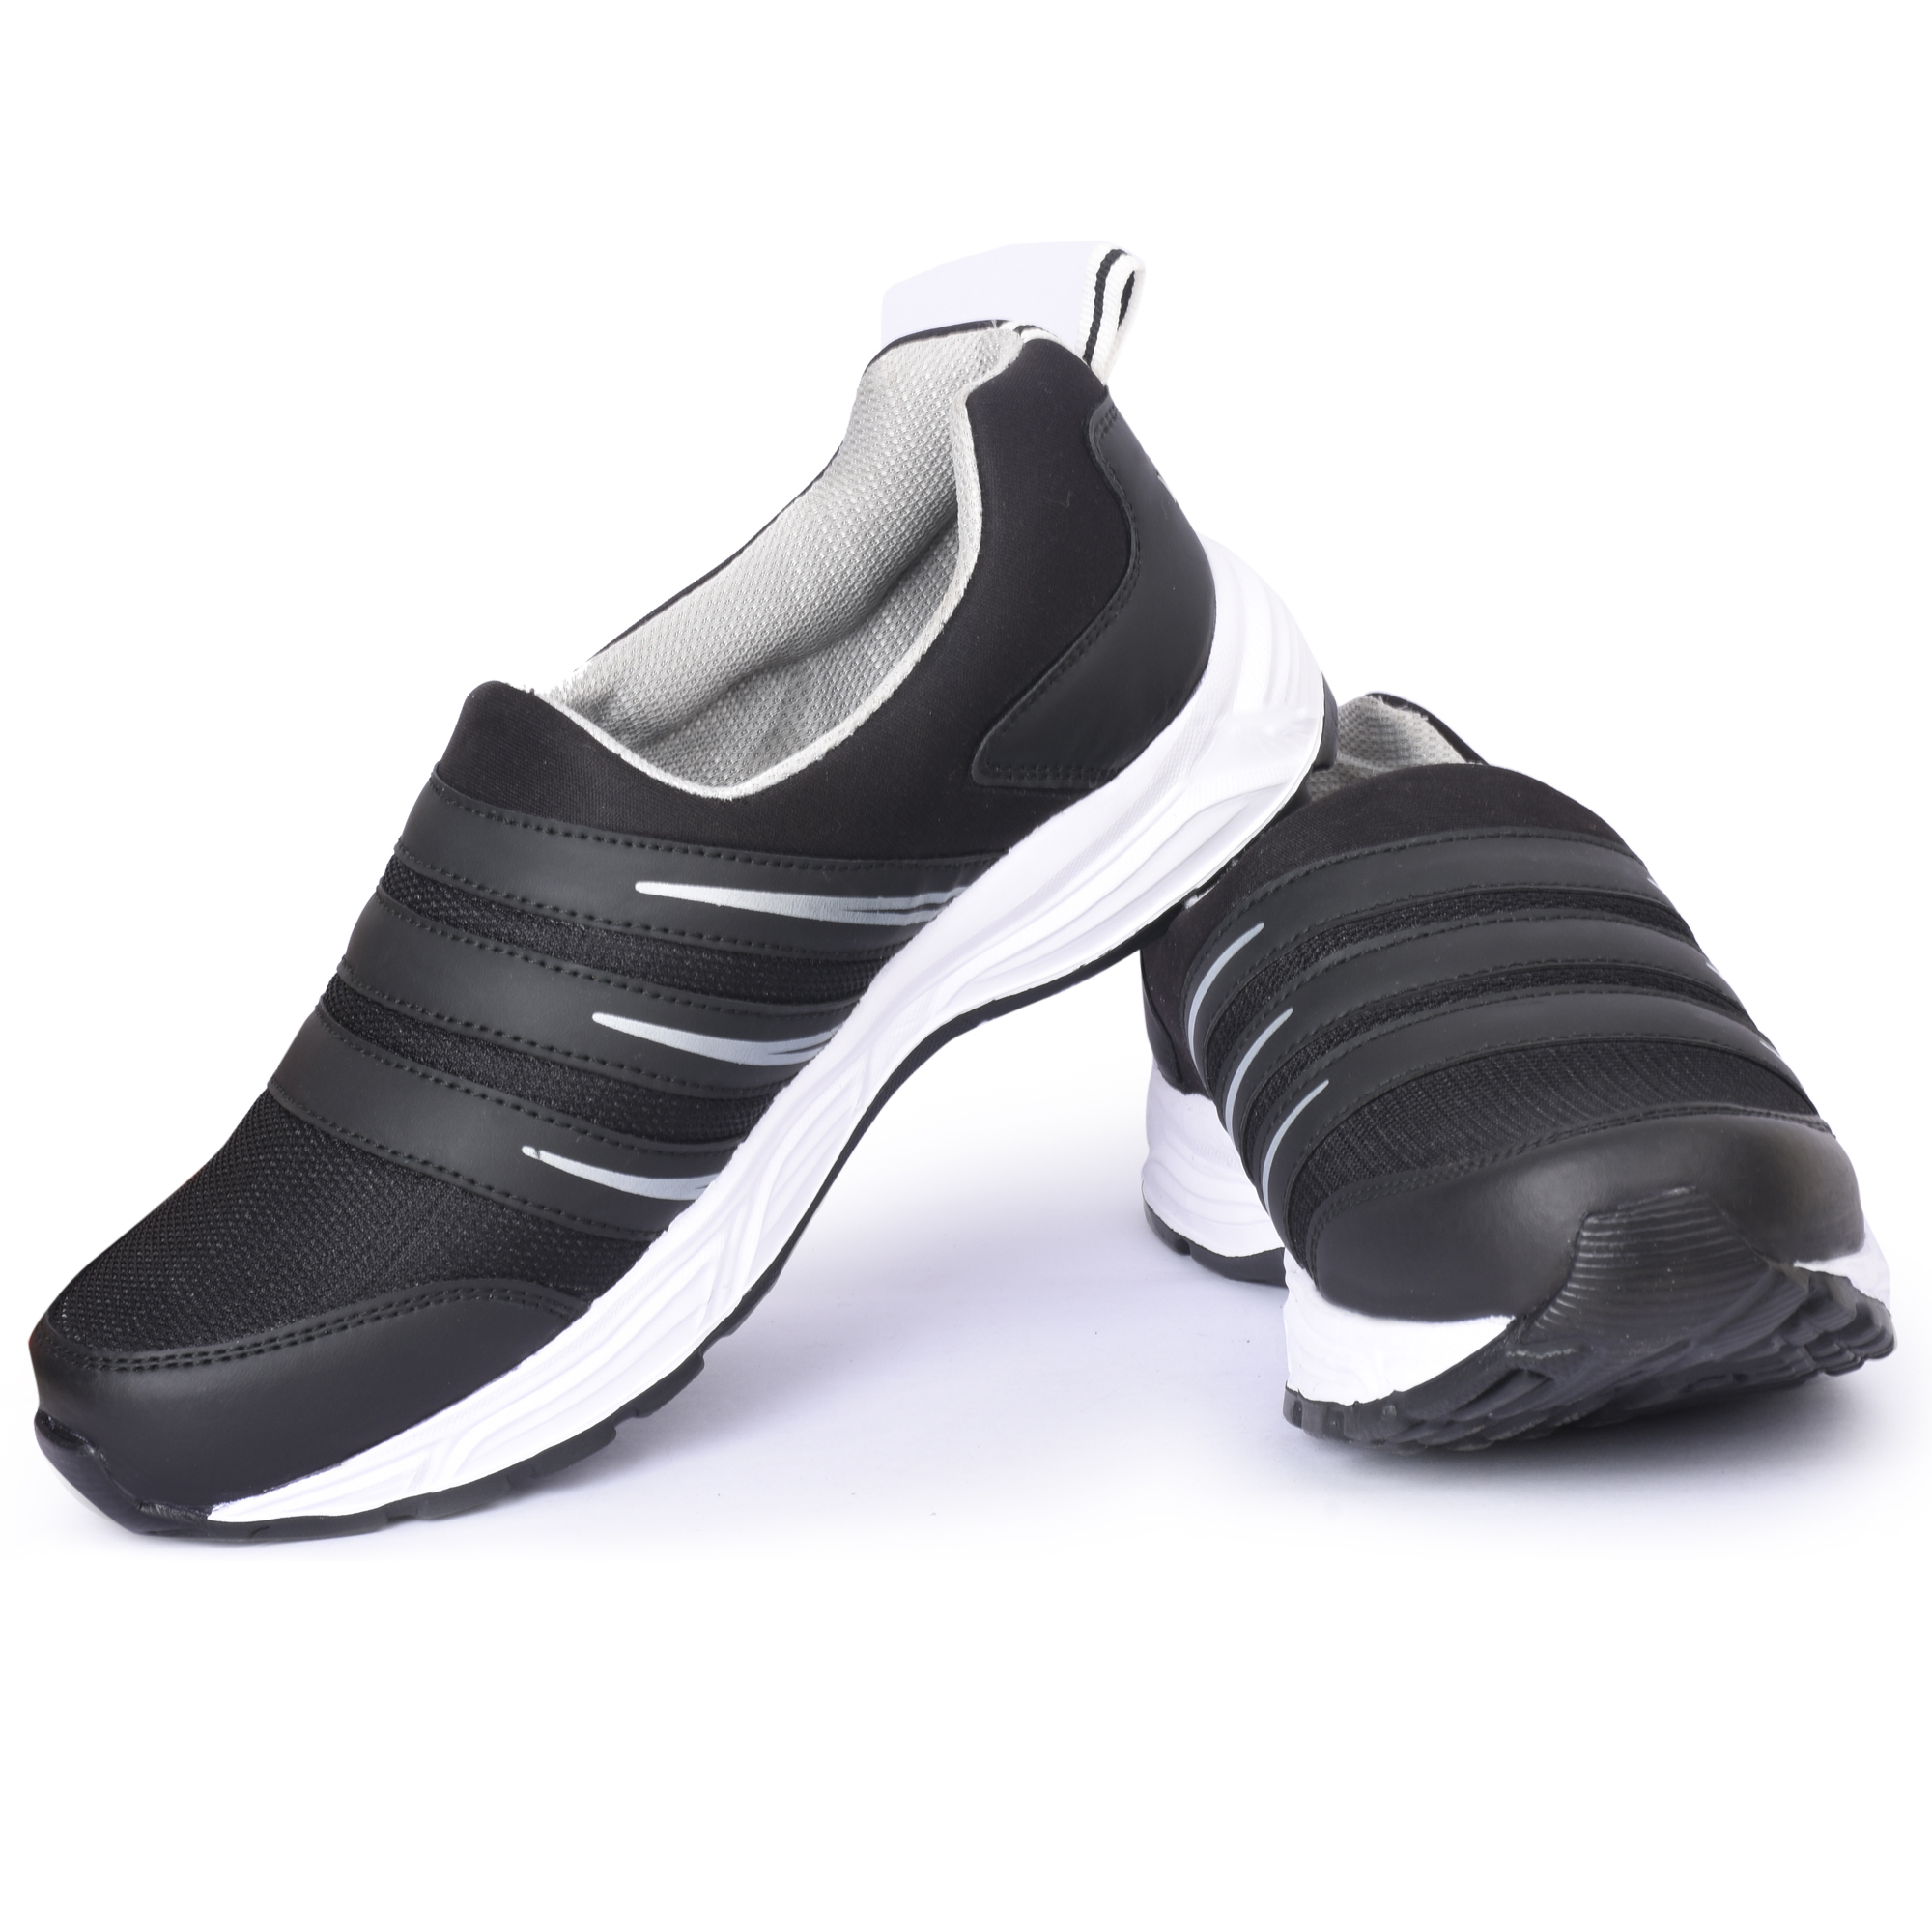 buy sport shoes for men317 india at kraftly